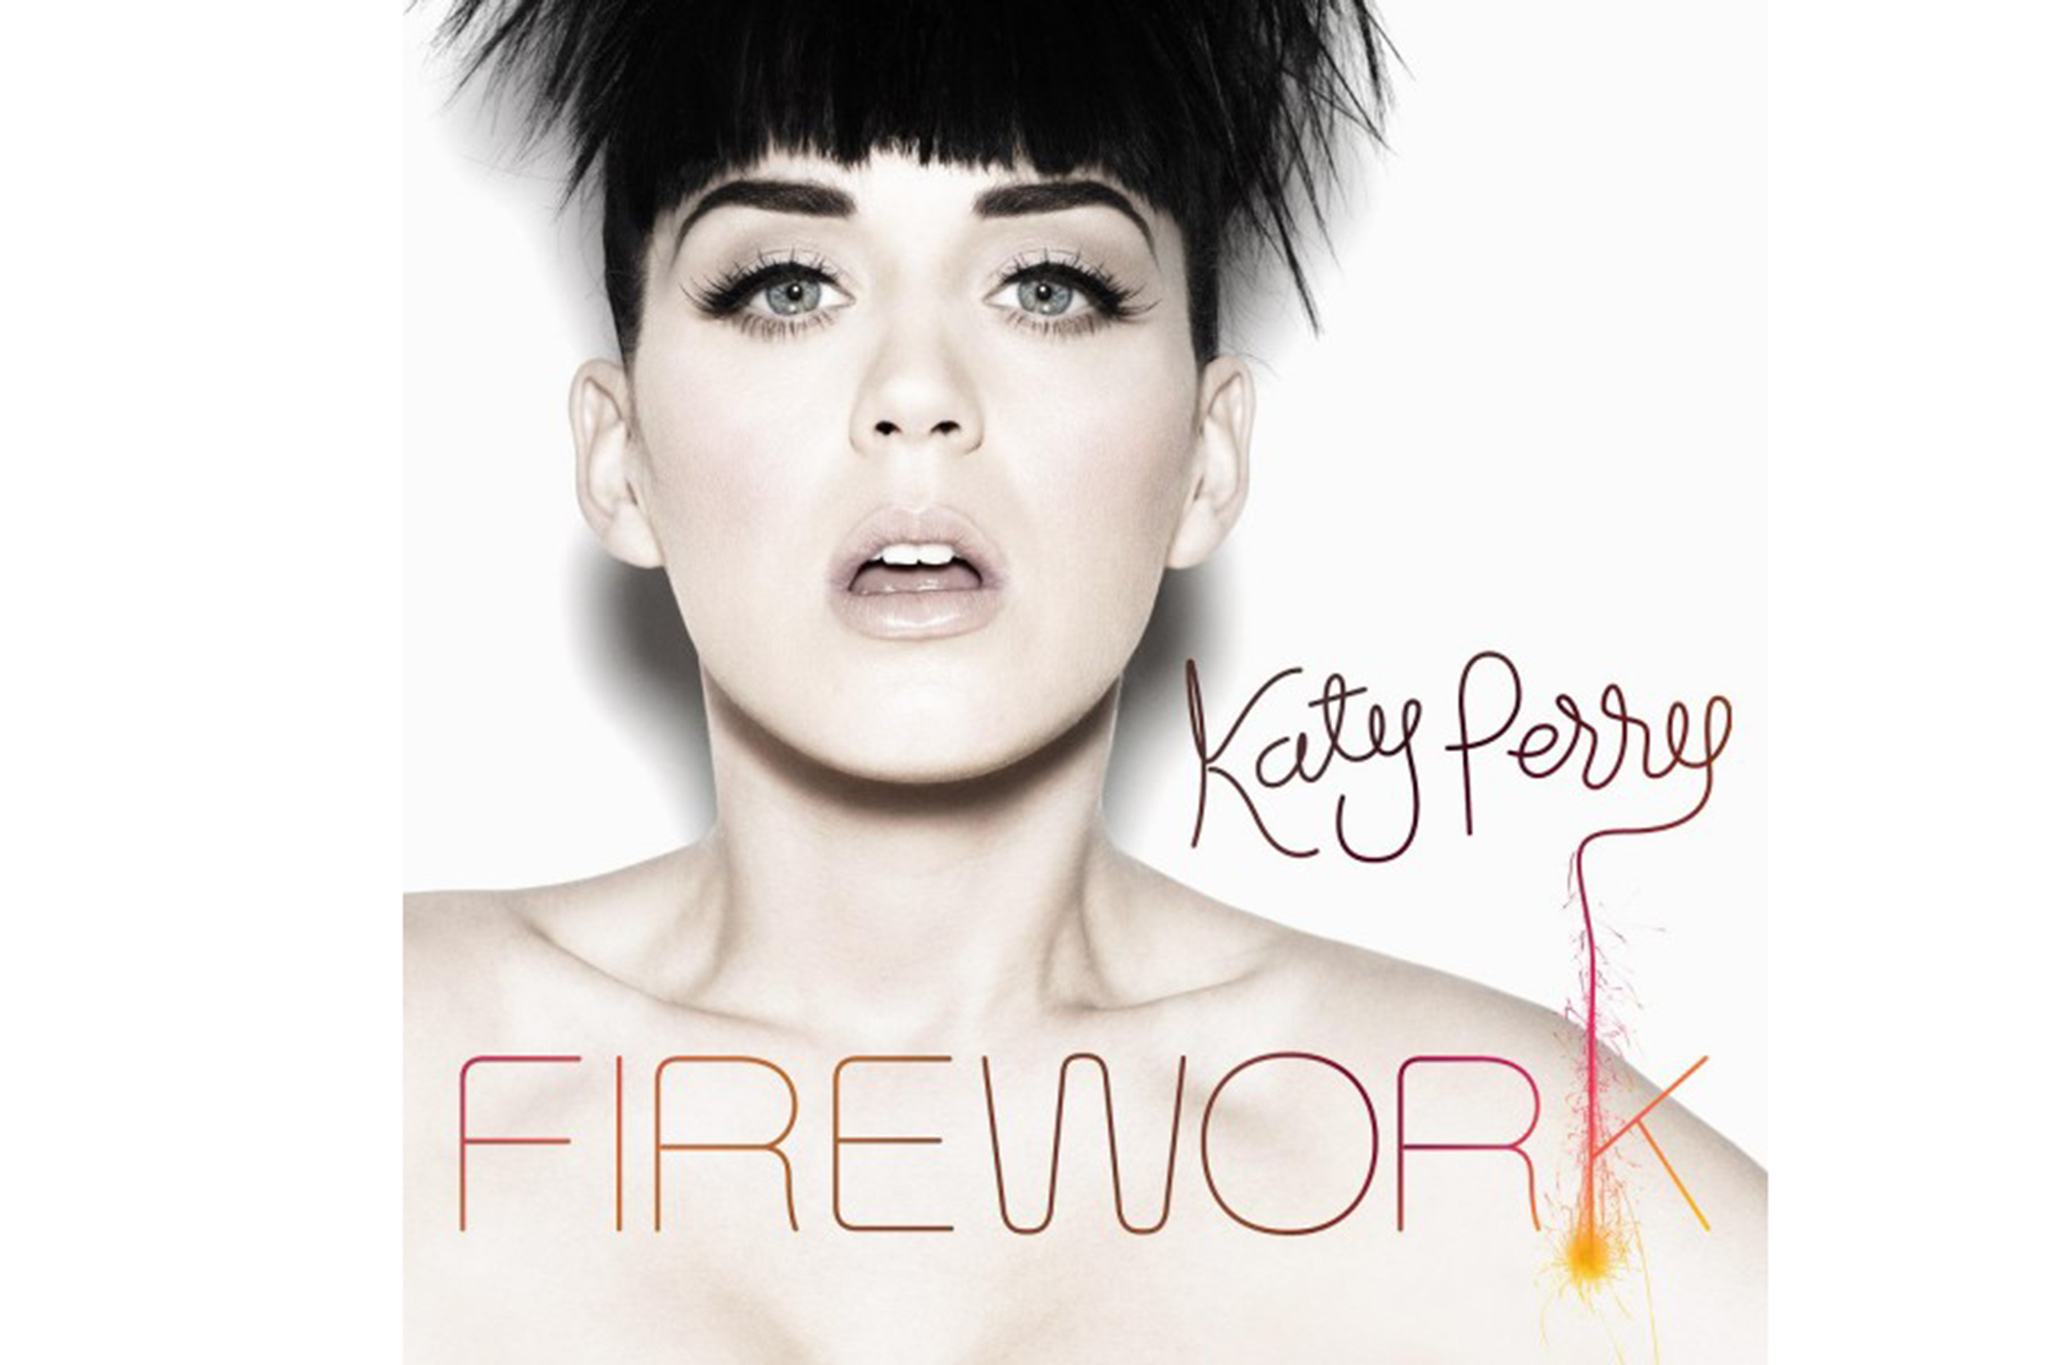 """Firework"" Katy Perry"